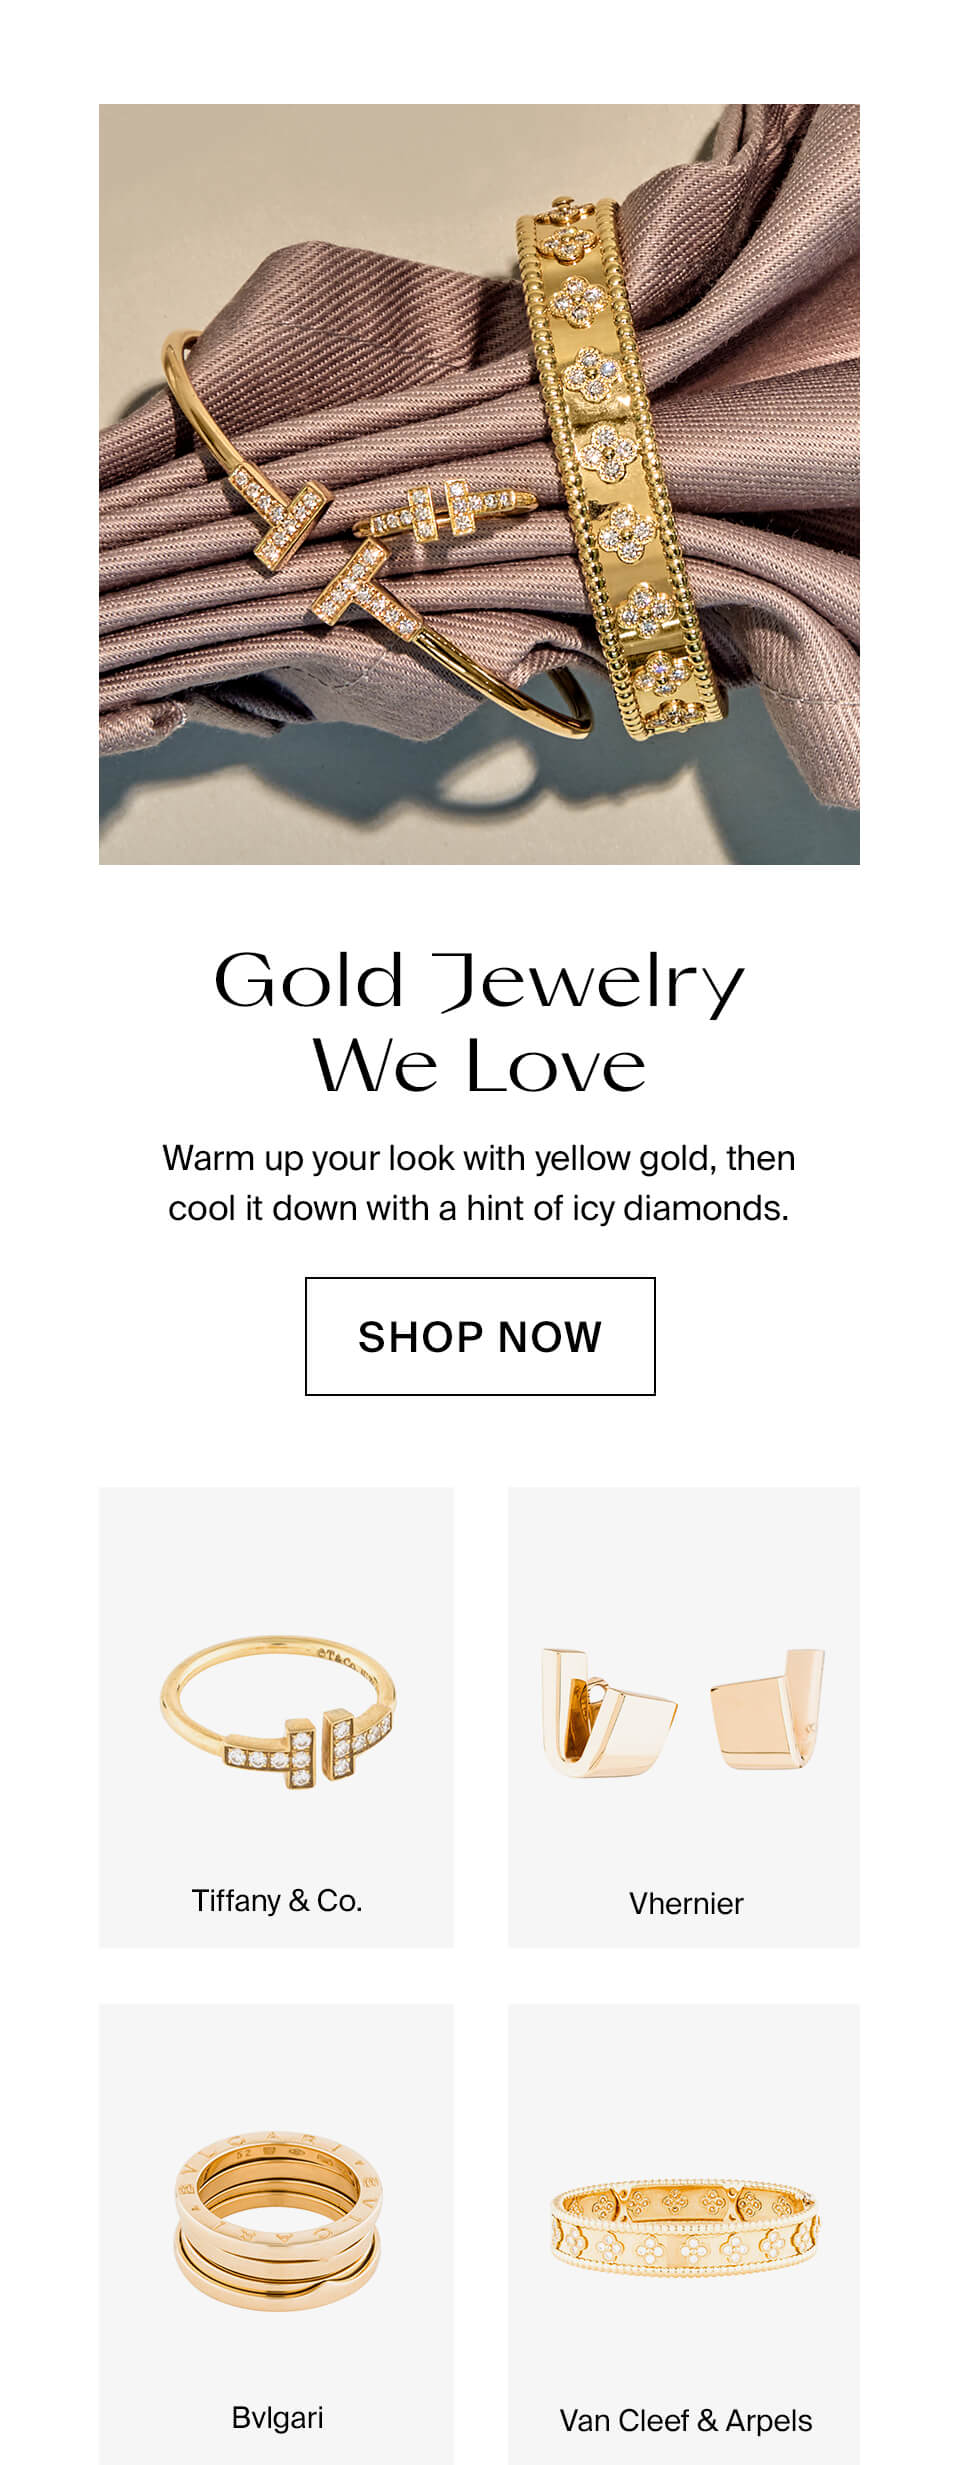 Gold Jewelry We Love Shop Now